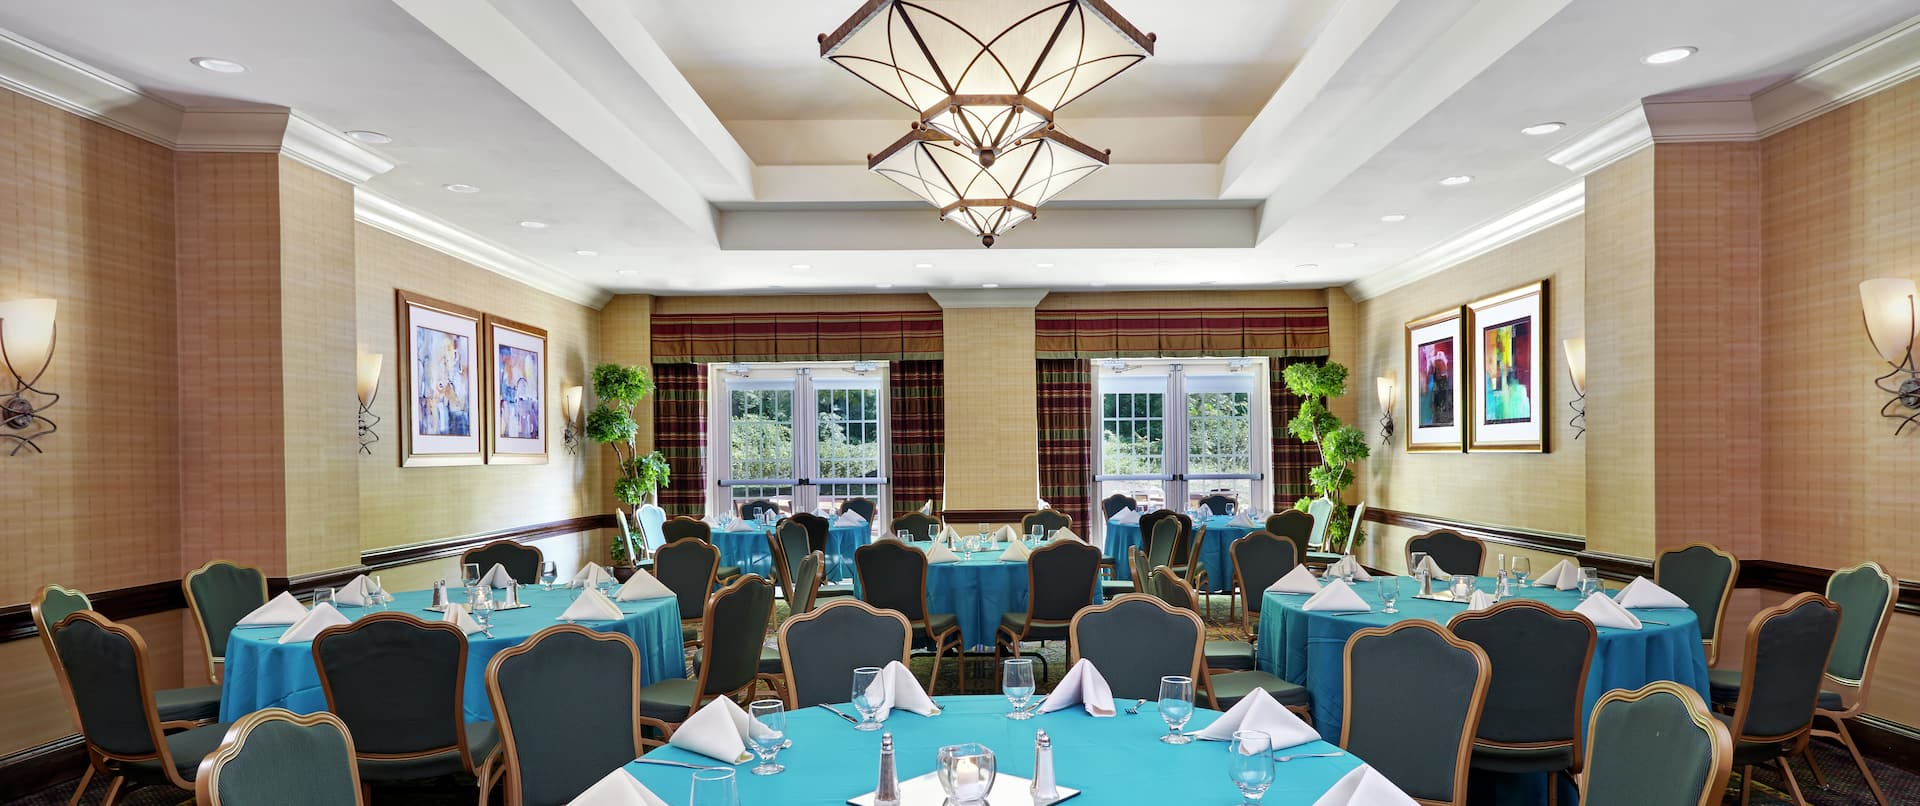 Meeting and Conference Space with Elegant Lighting Fixtures and Furnishings